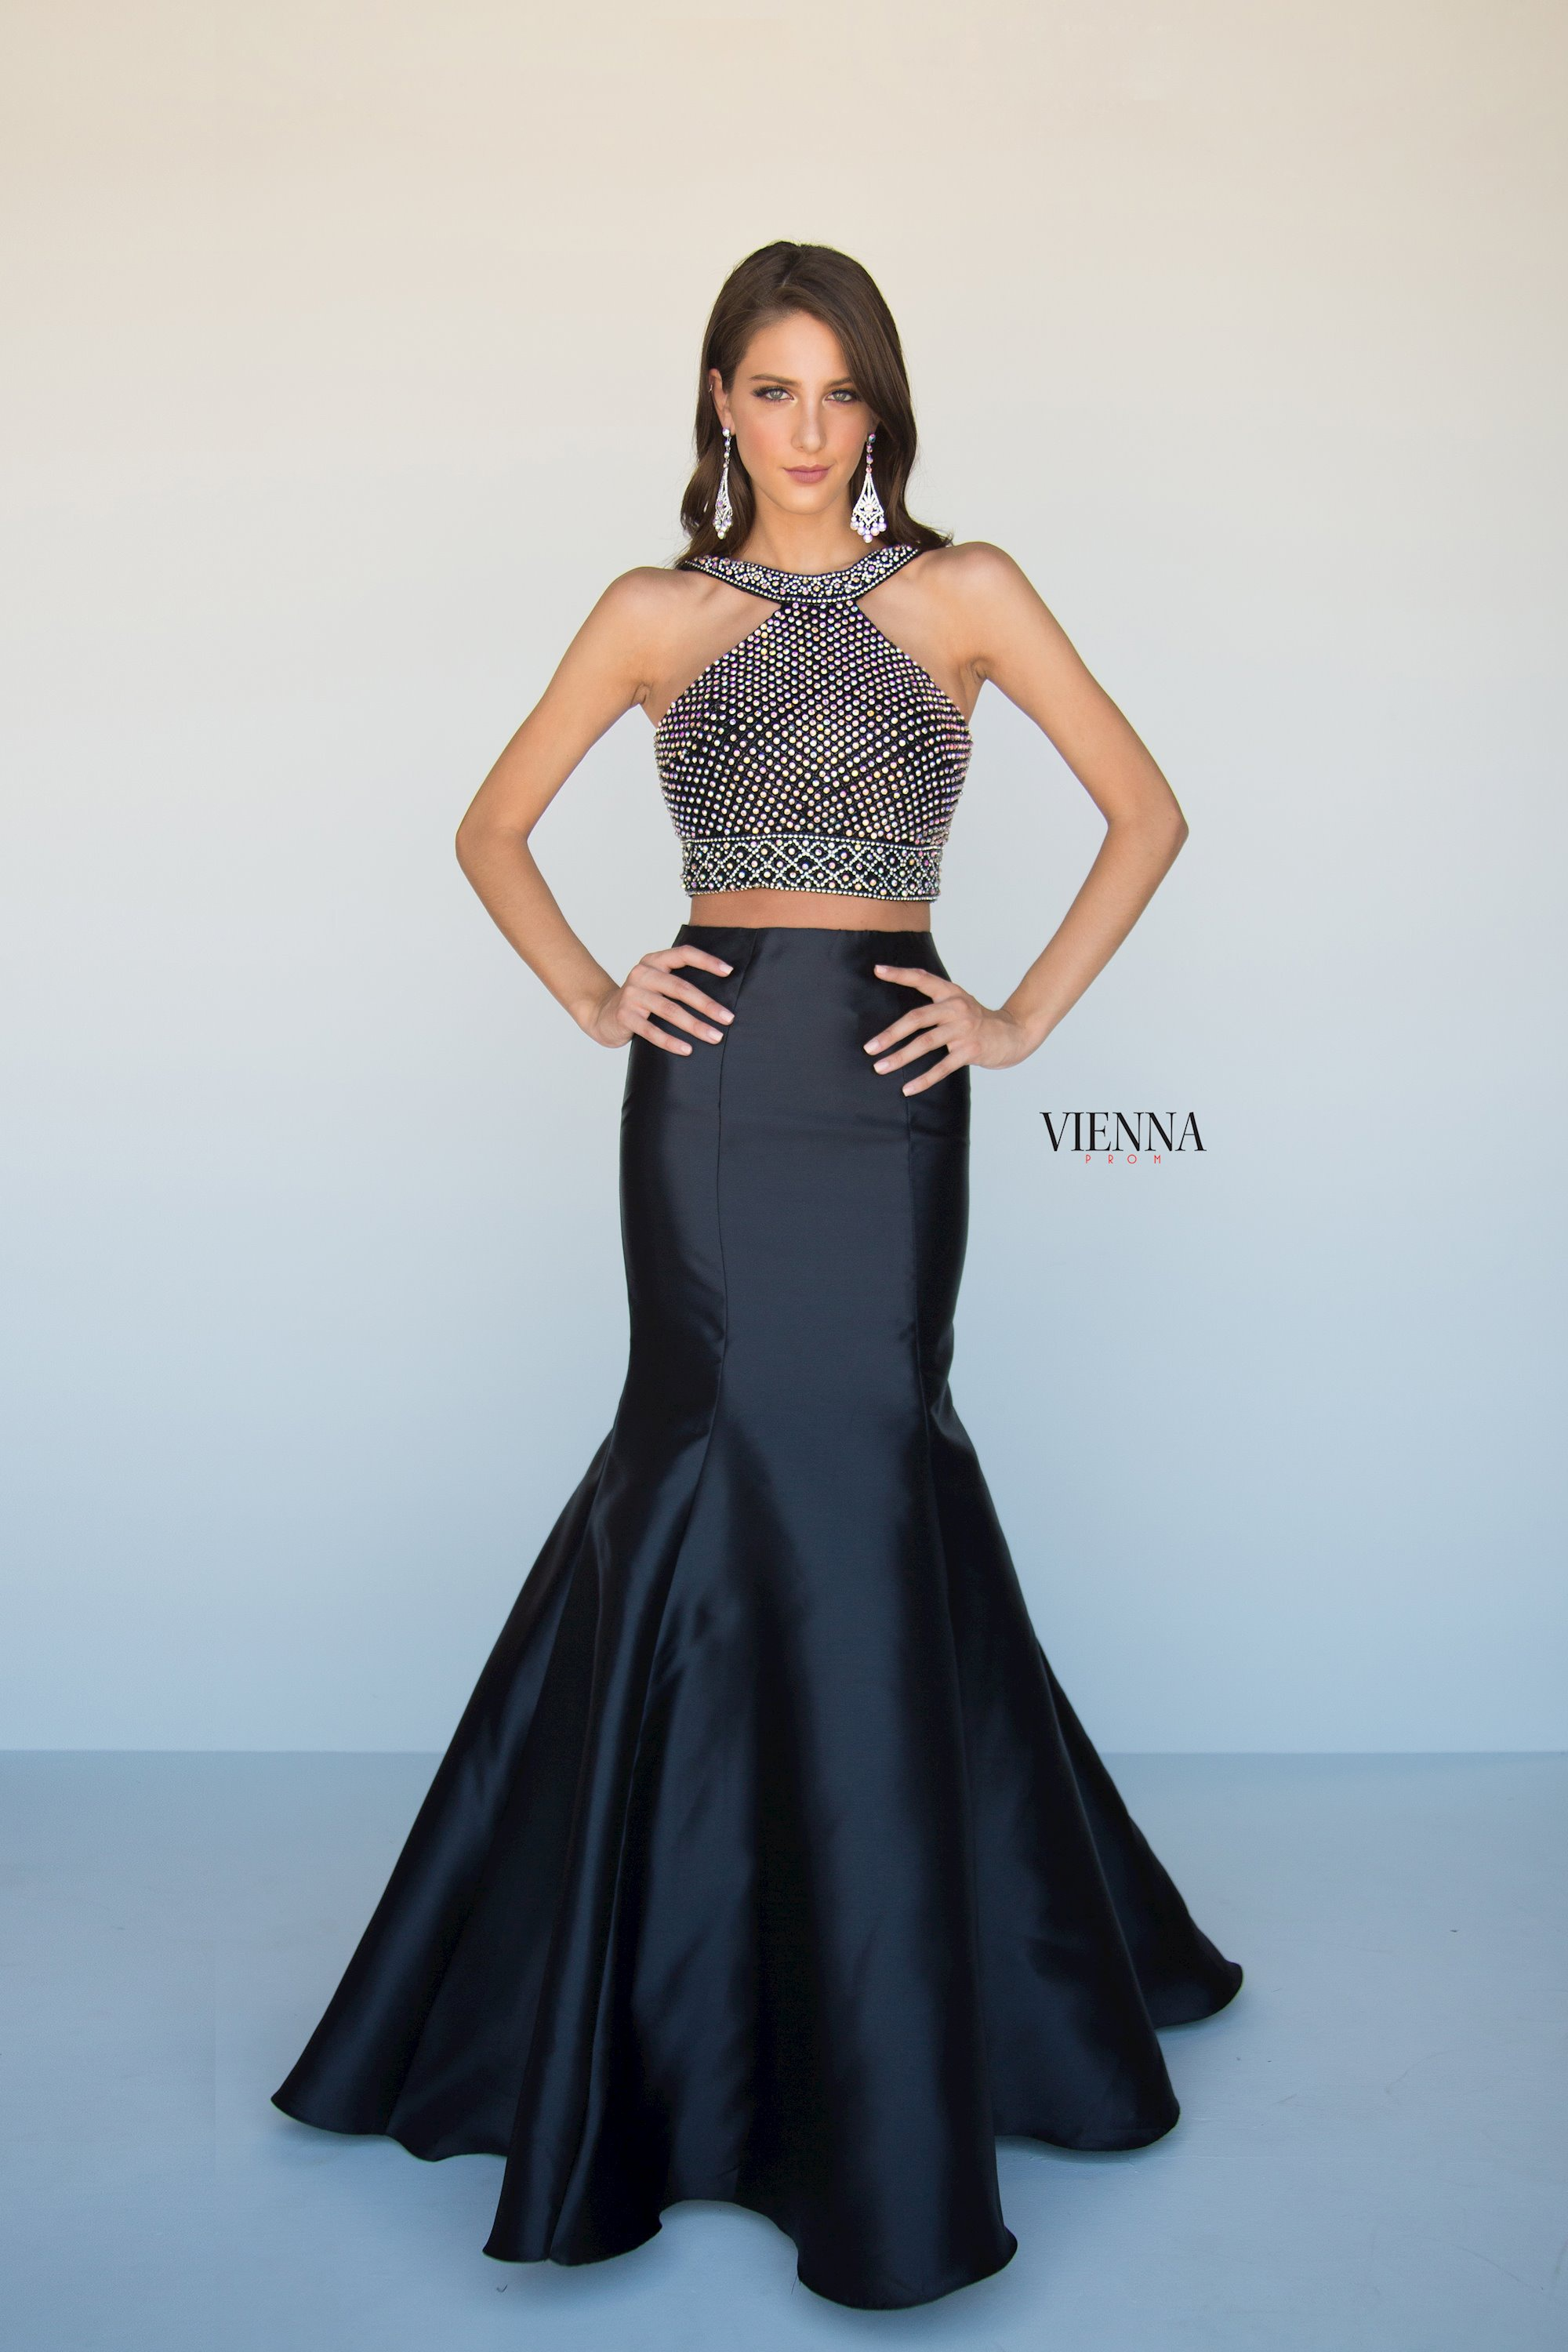 Style 8289 Vienna Black Size 00 Jewelled Halter Backless Tall Height Mermaid Dress on Queenly